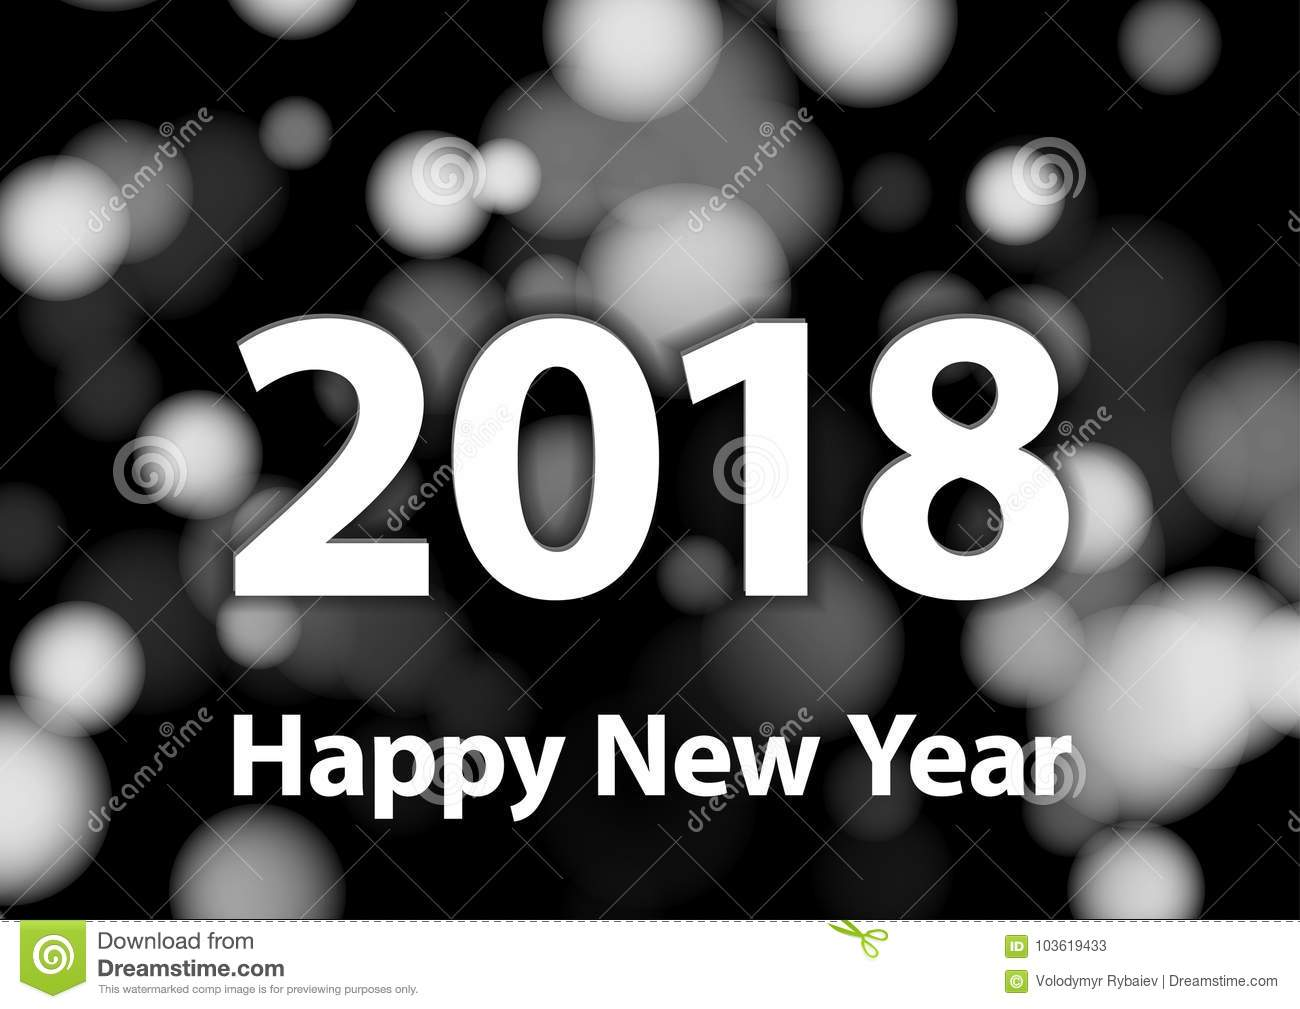 Great 2018 Happy New Year Vector Background With Silver Glitter Numbers. Festive  Retro Poster With Shimmering Texture. Glittering, Holiday.